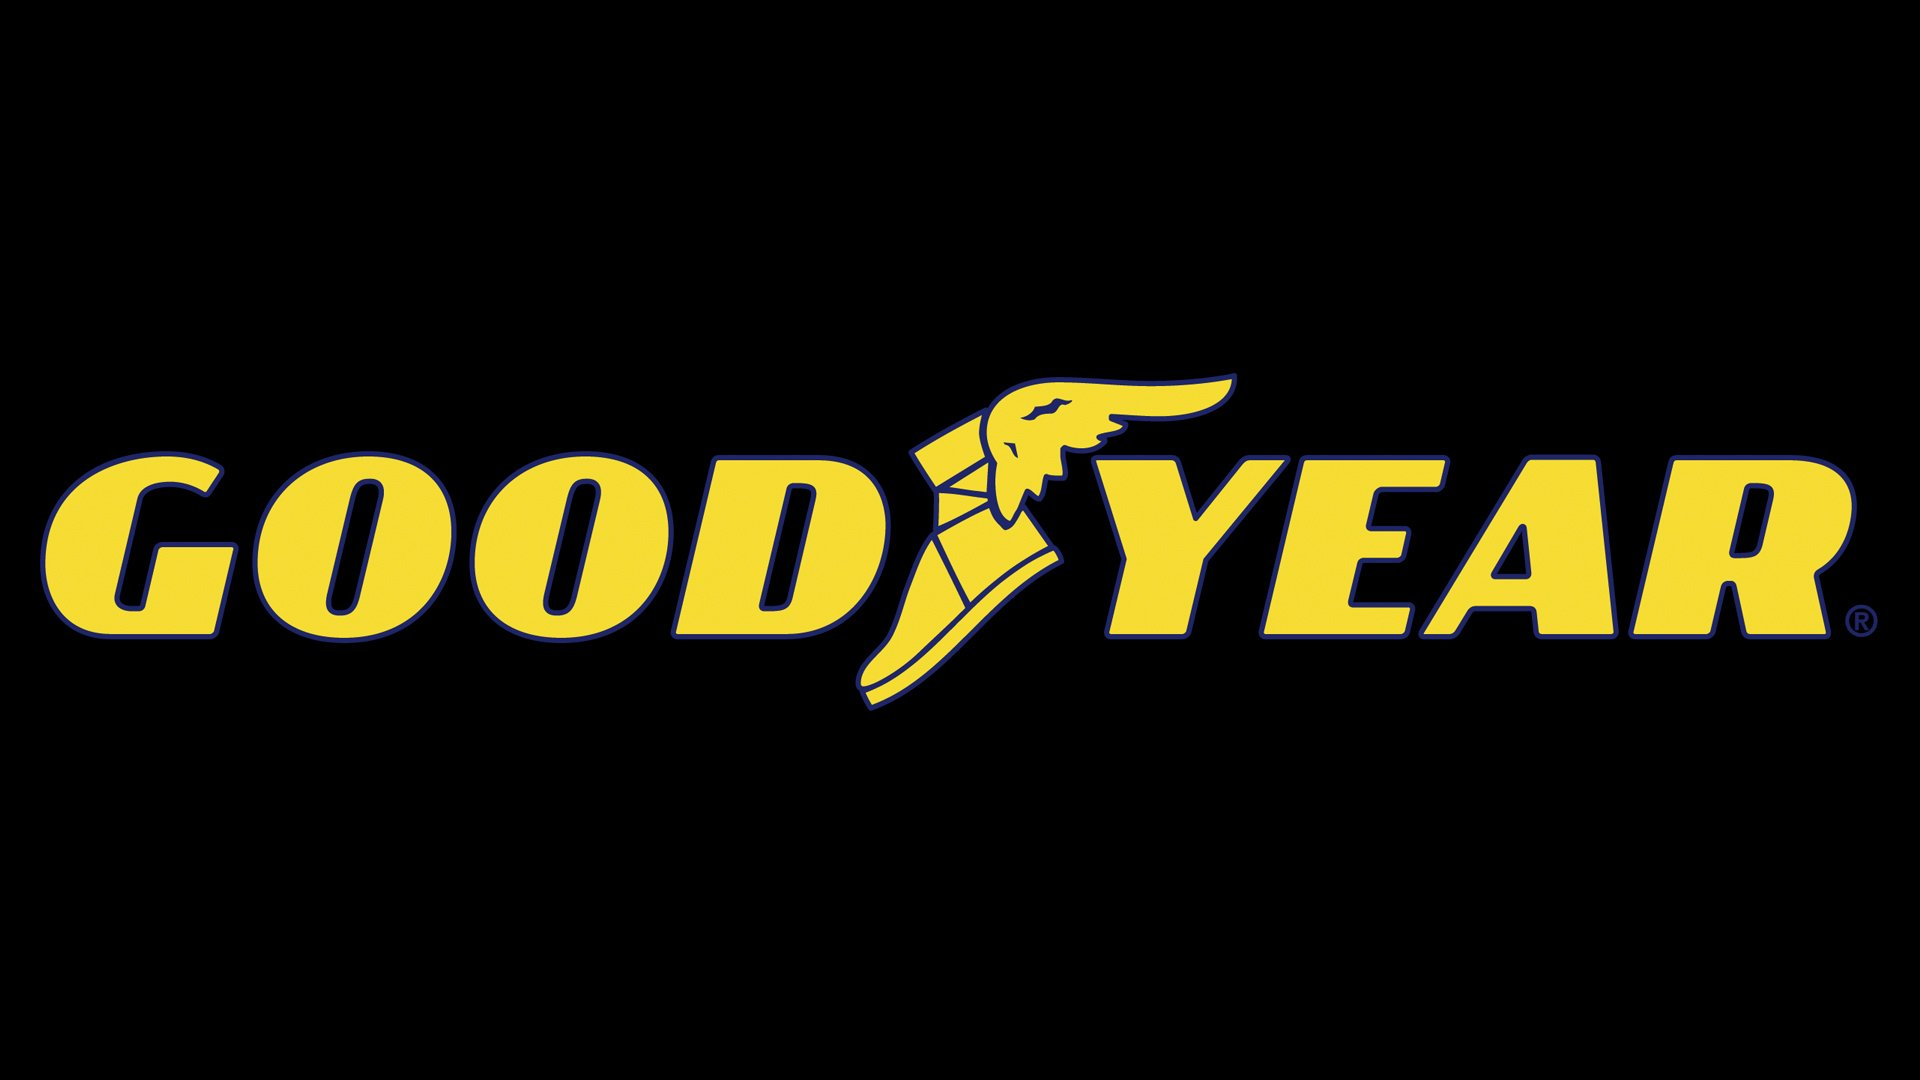 goodyear logo  goodyear symbol  meaning  history and evolution winged foot logo red winged foot logo history